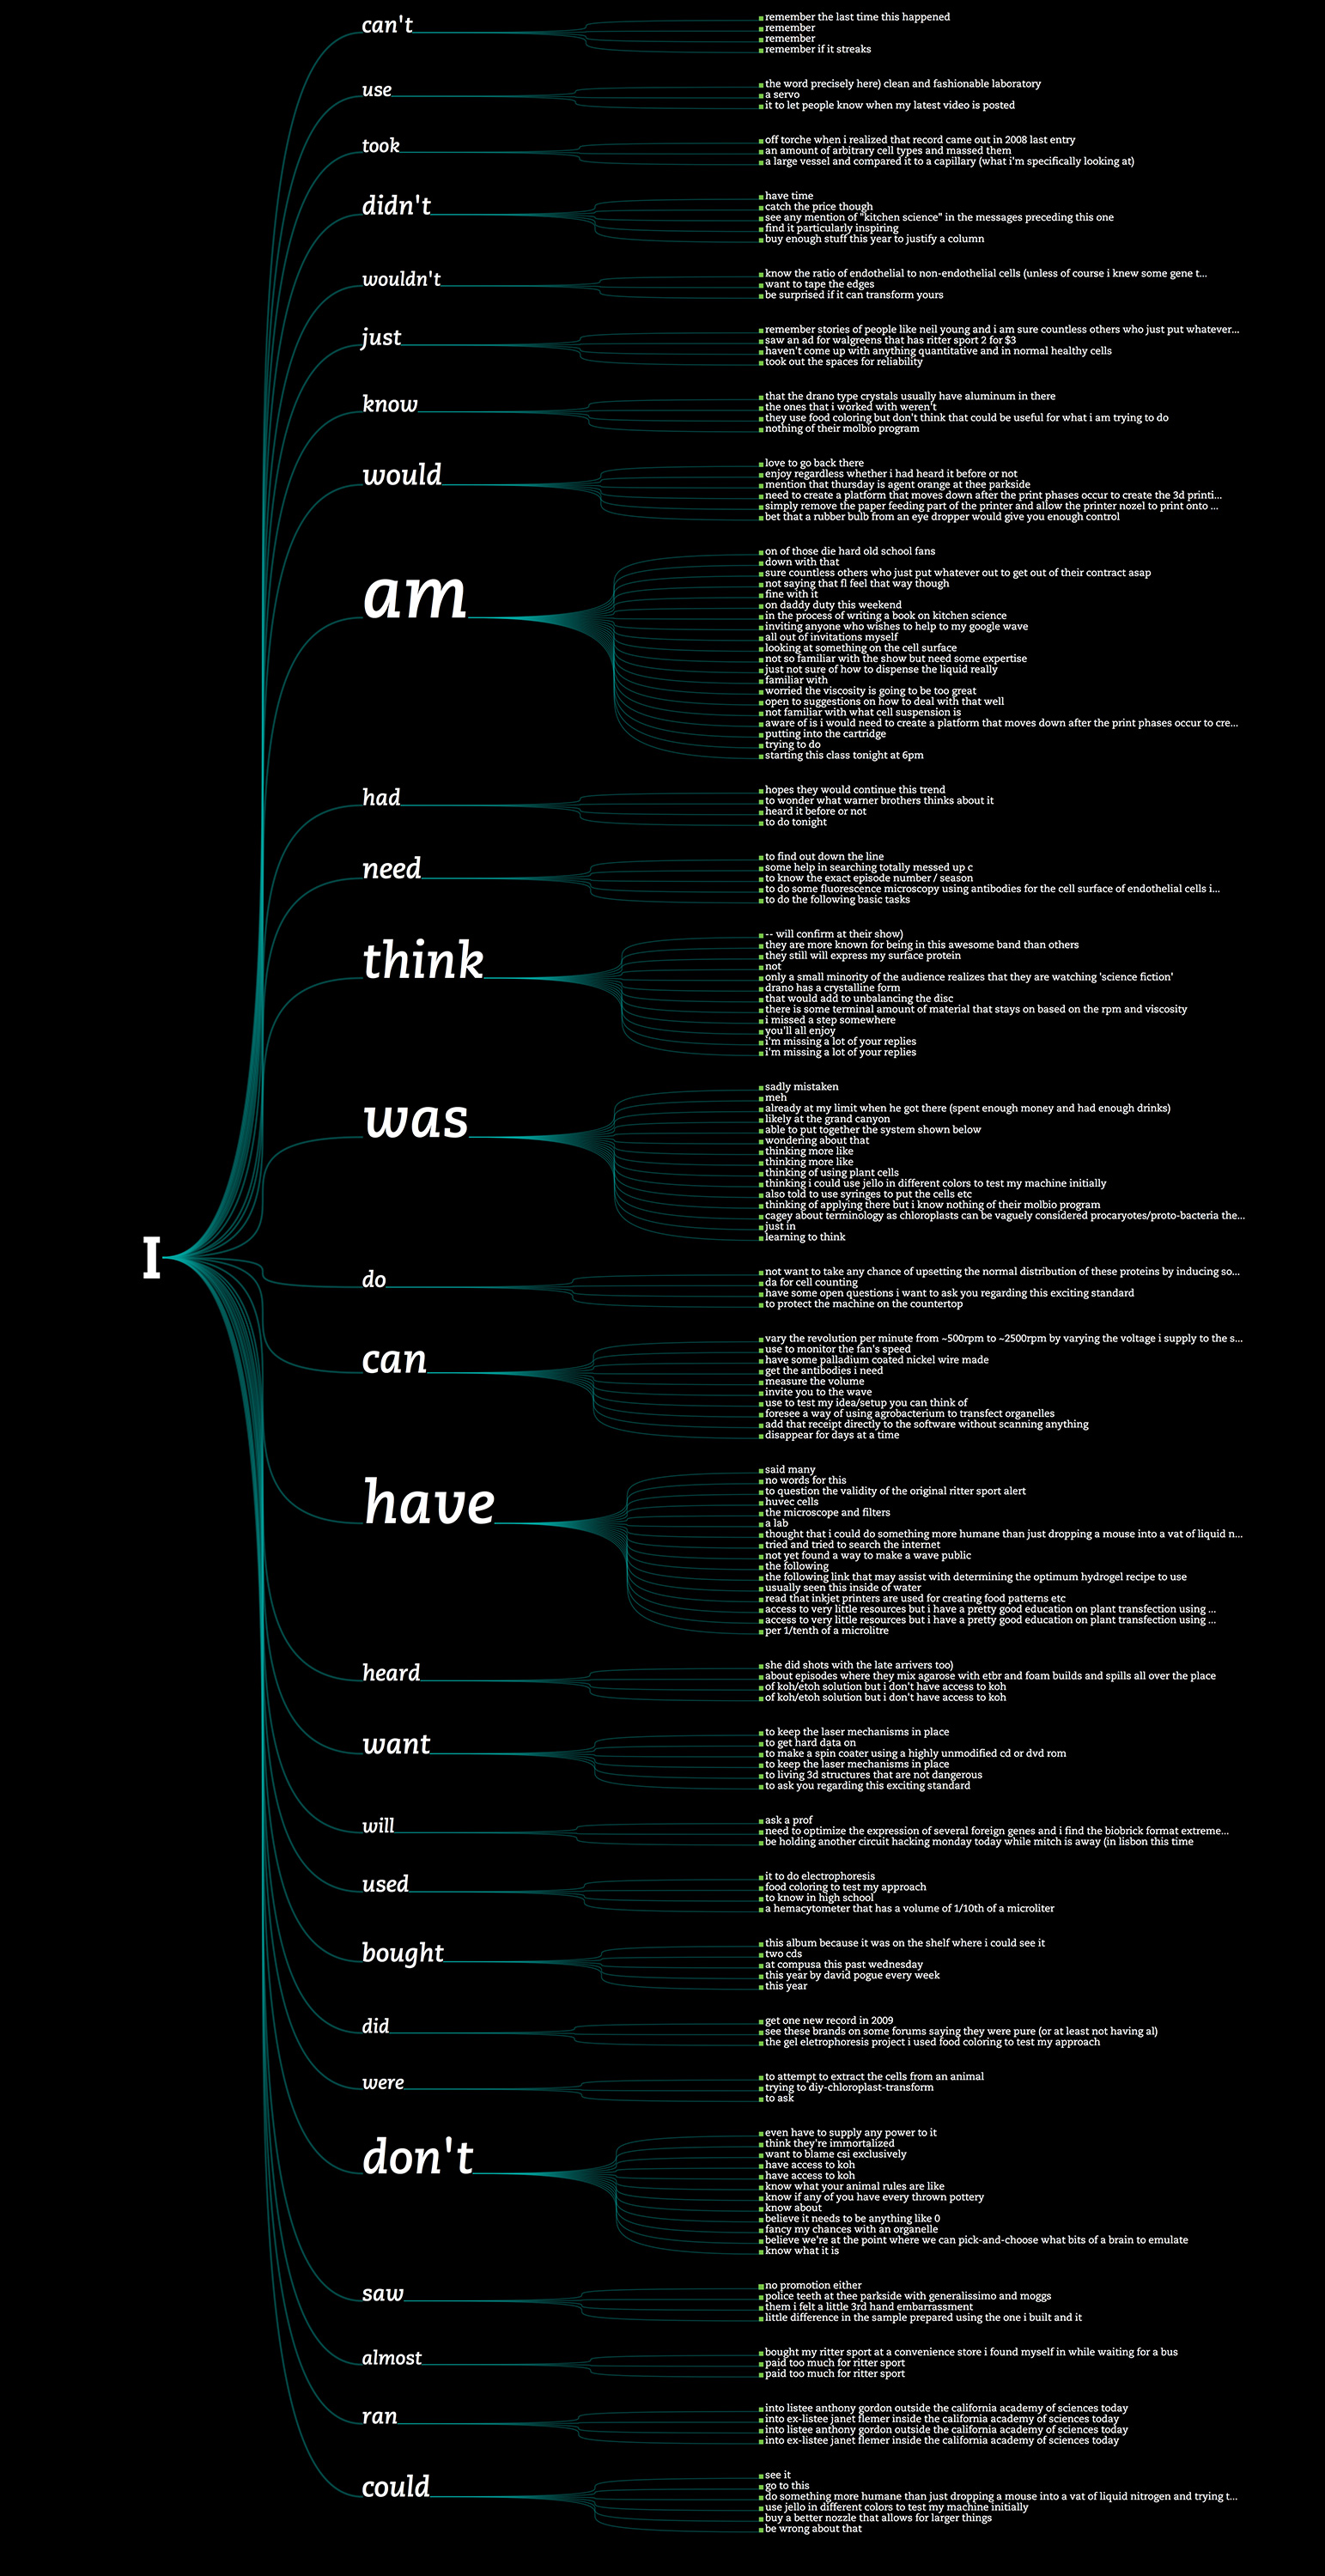 Tree graph of sentences scraped from email. Although I wrote the custom code myself to produce the visualization, I took inspiration directly from the ManyEyes' Word Tree visualization.